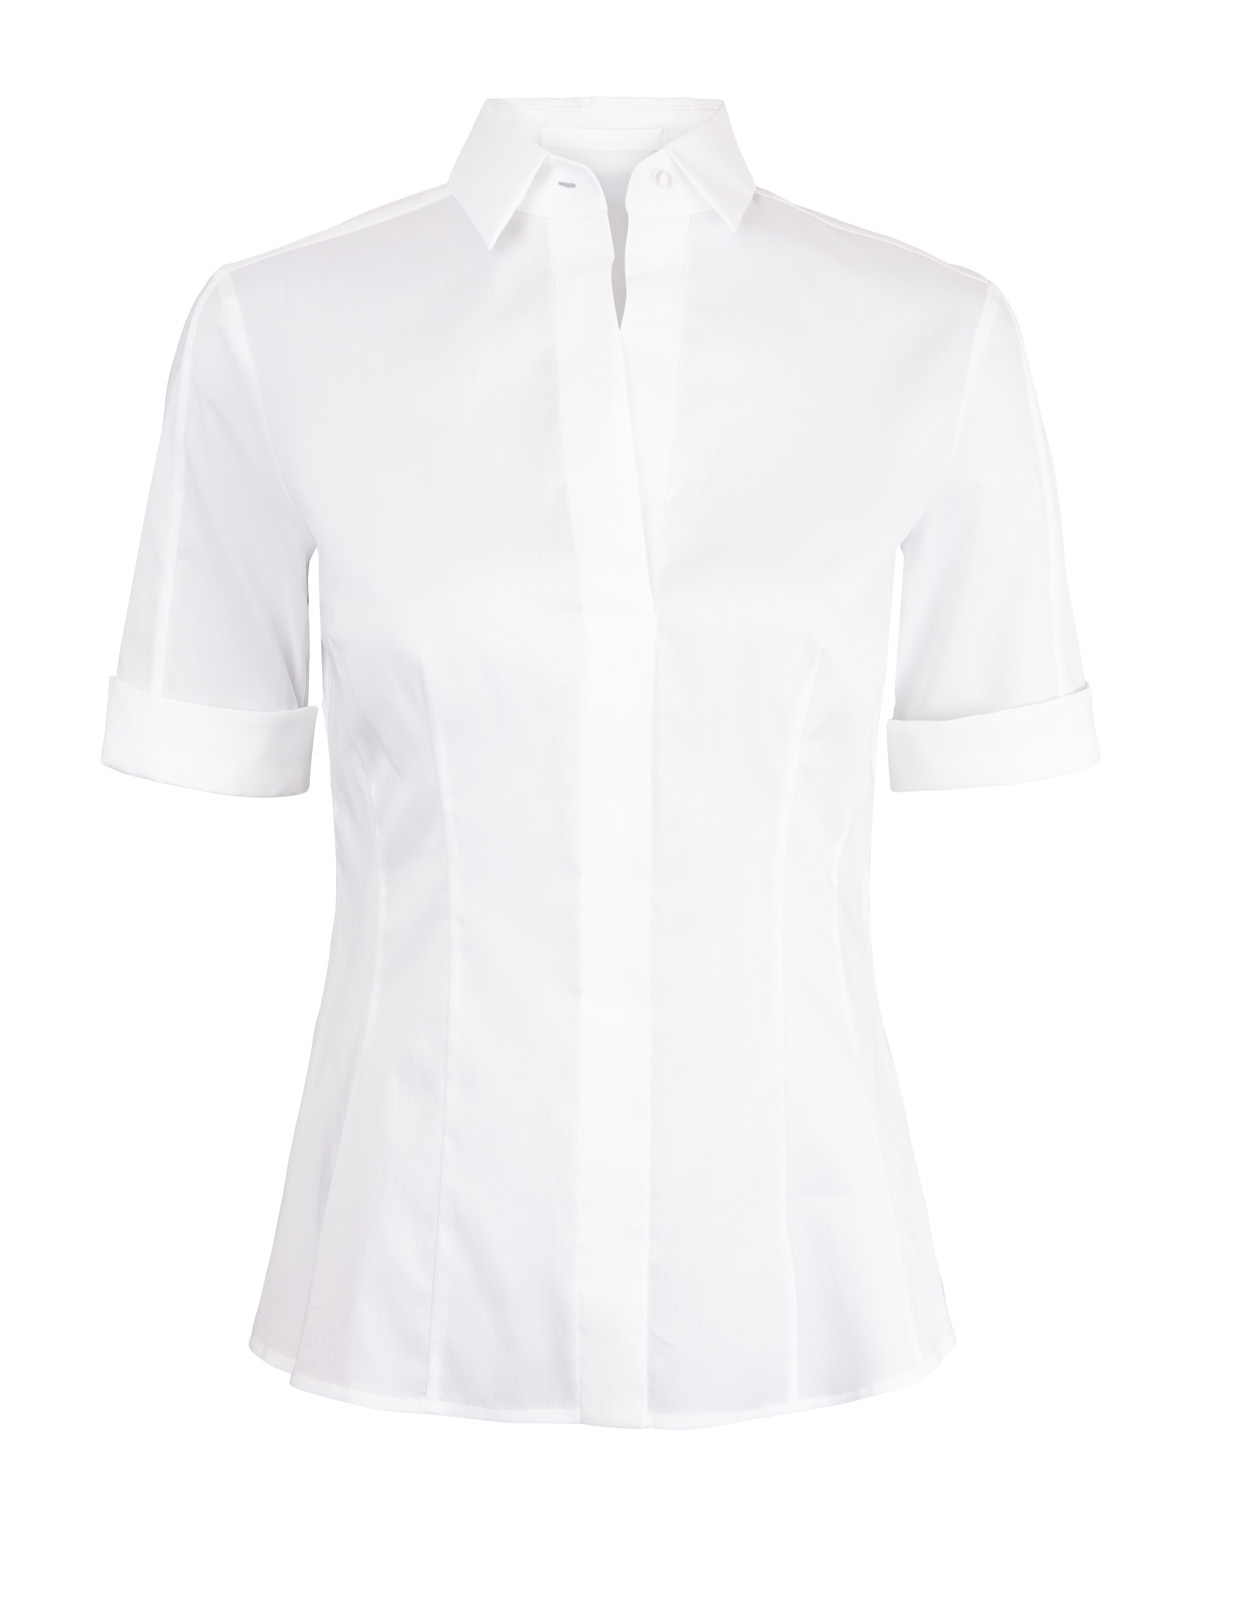 Bashini 2 Shirt White